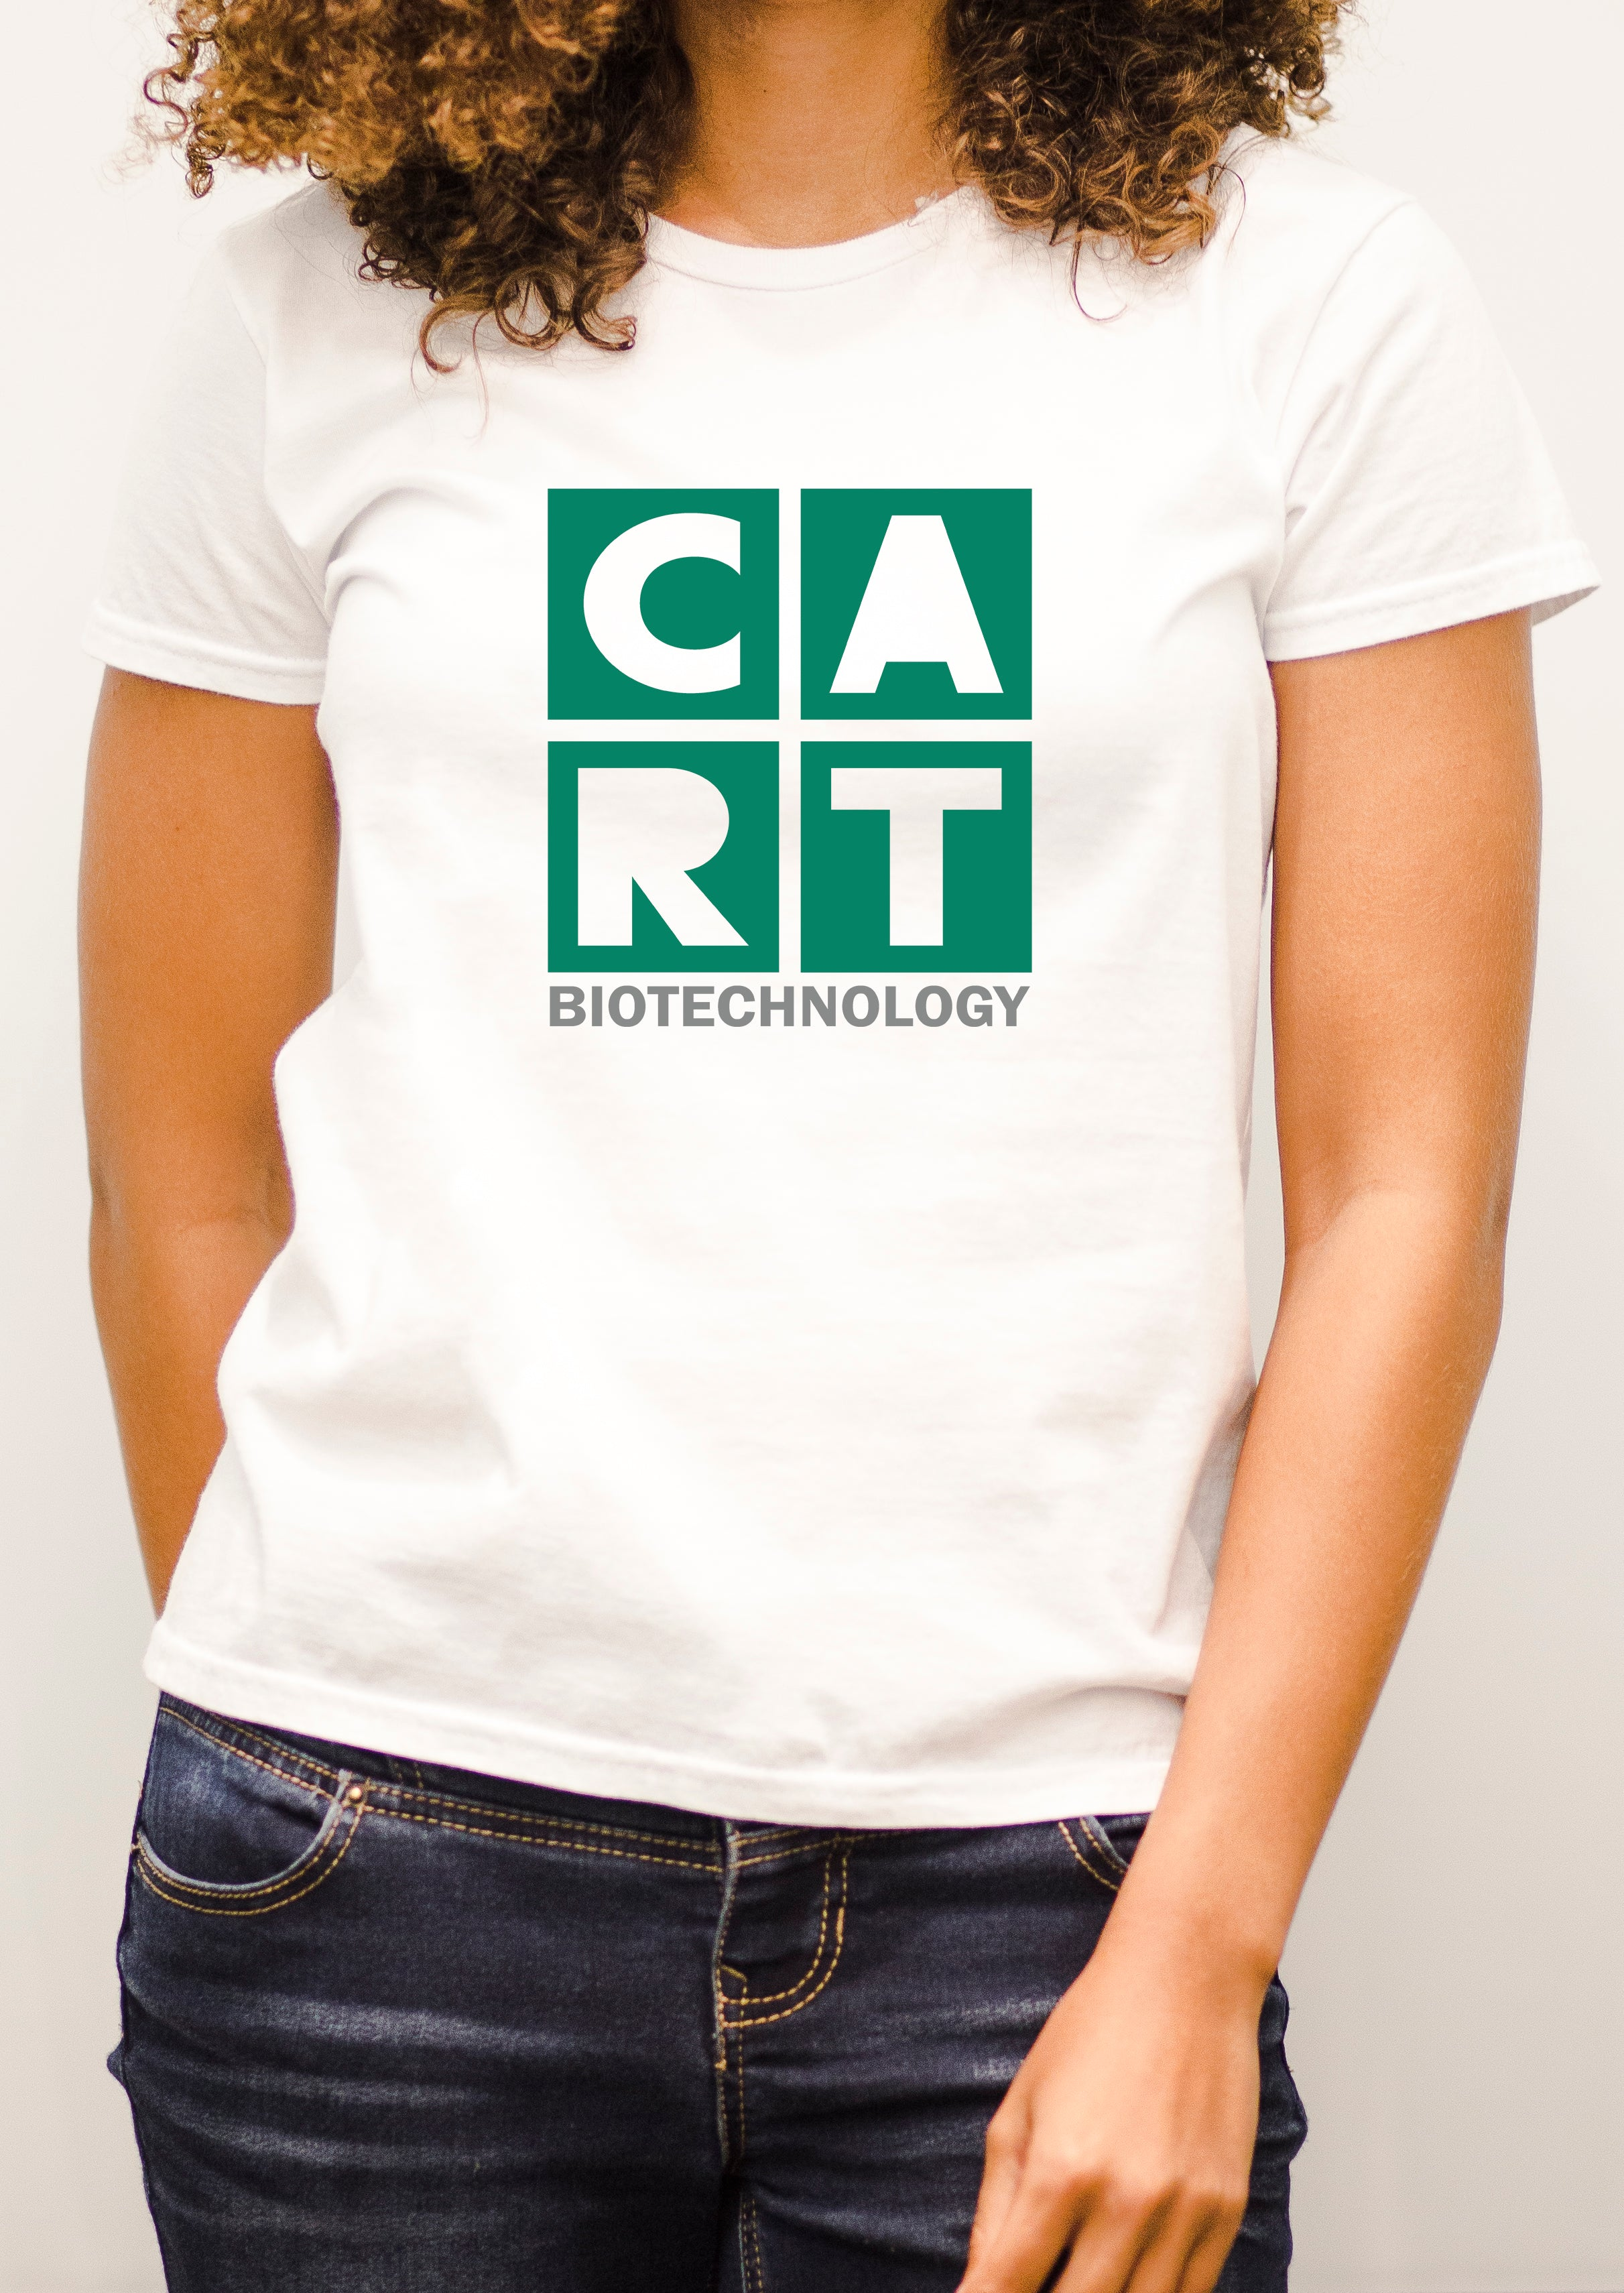 Women's short sleeve t-shirt - biotechnology grey/green logo